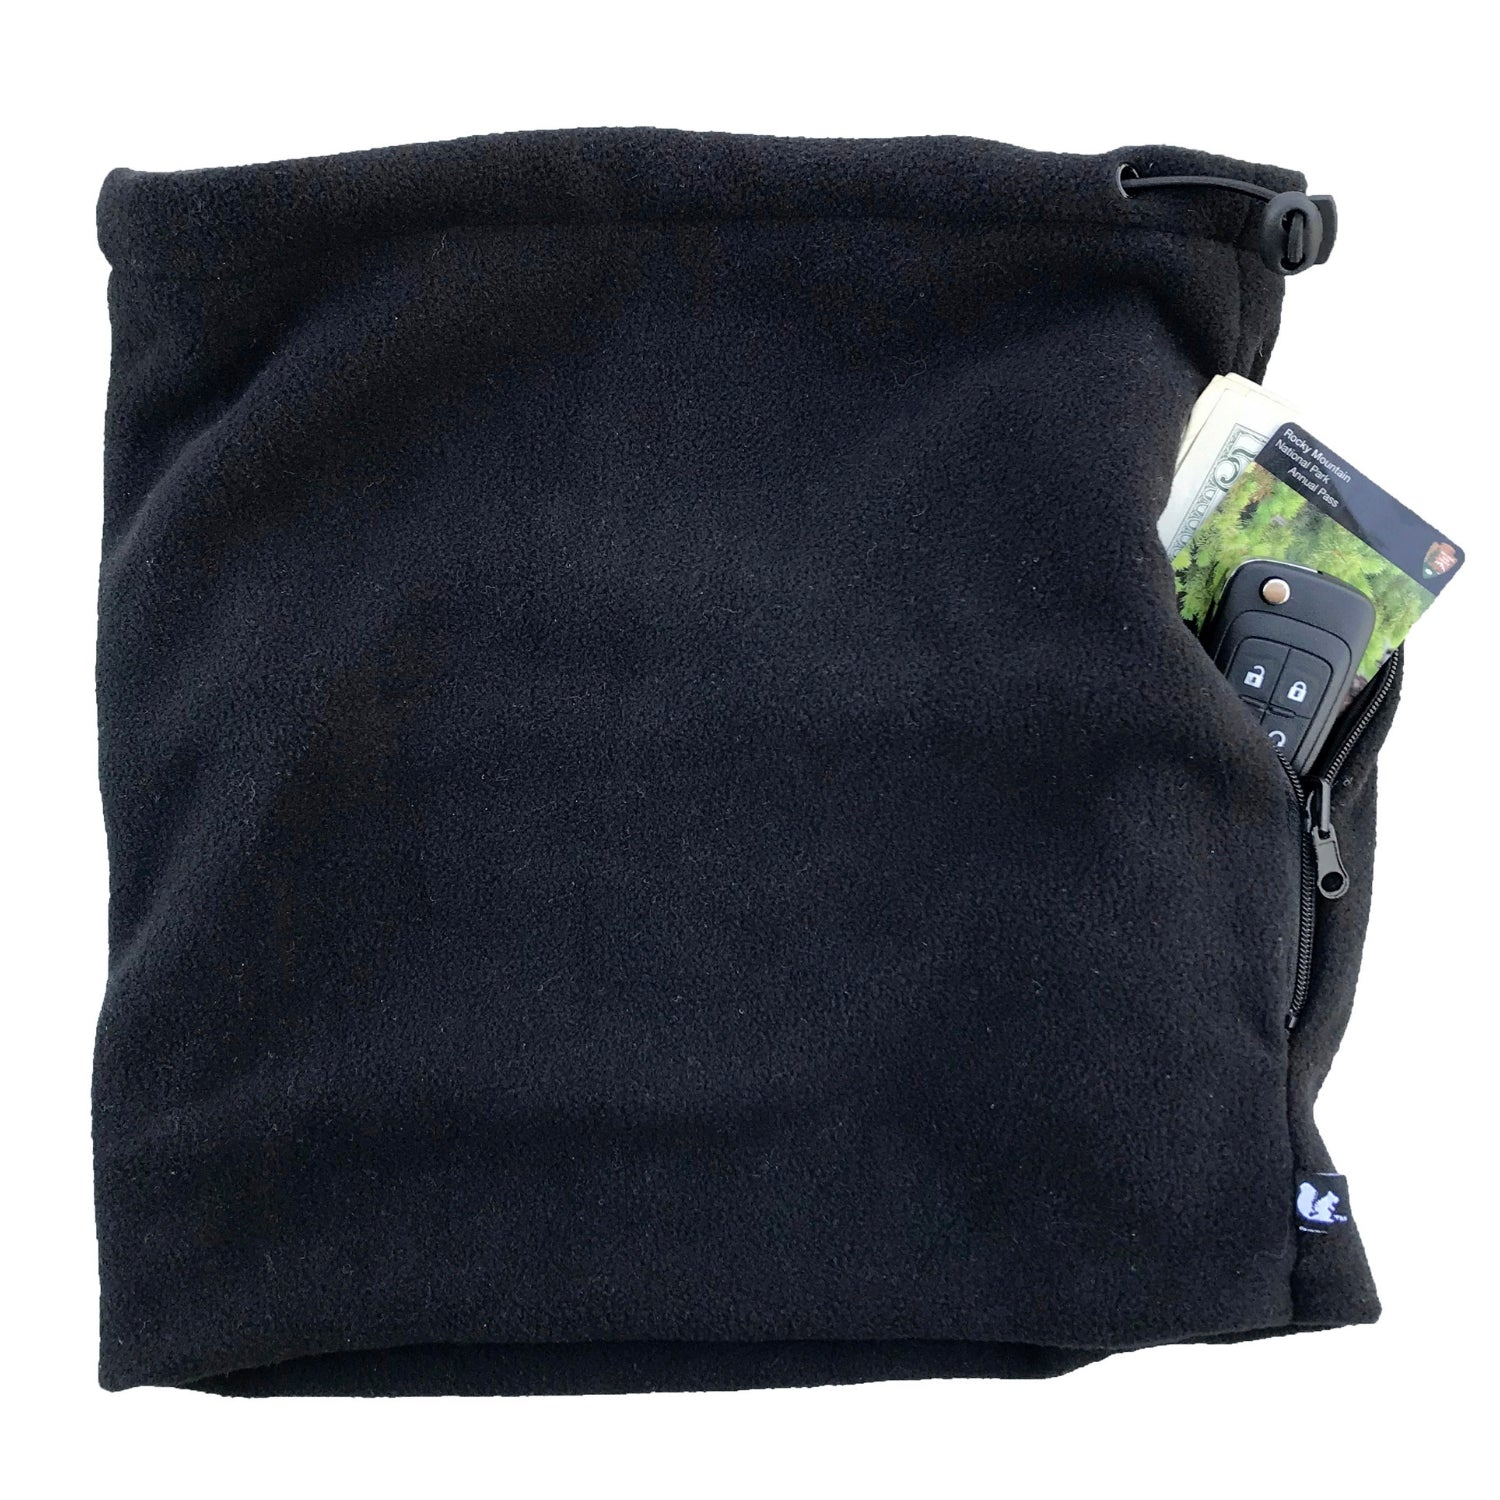 SHOLDIT Convertible Neck Gaiter with Pocket Black